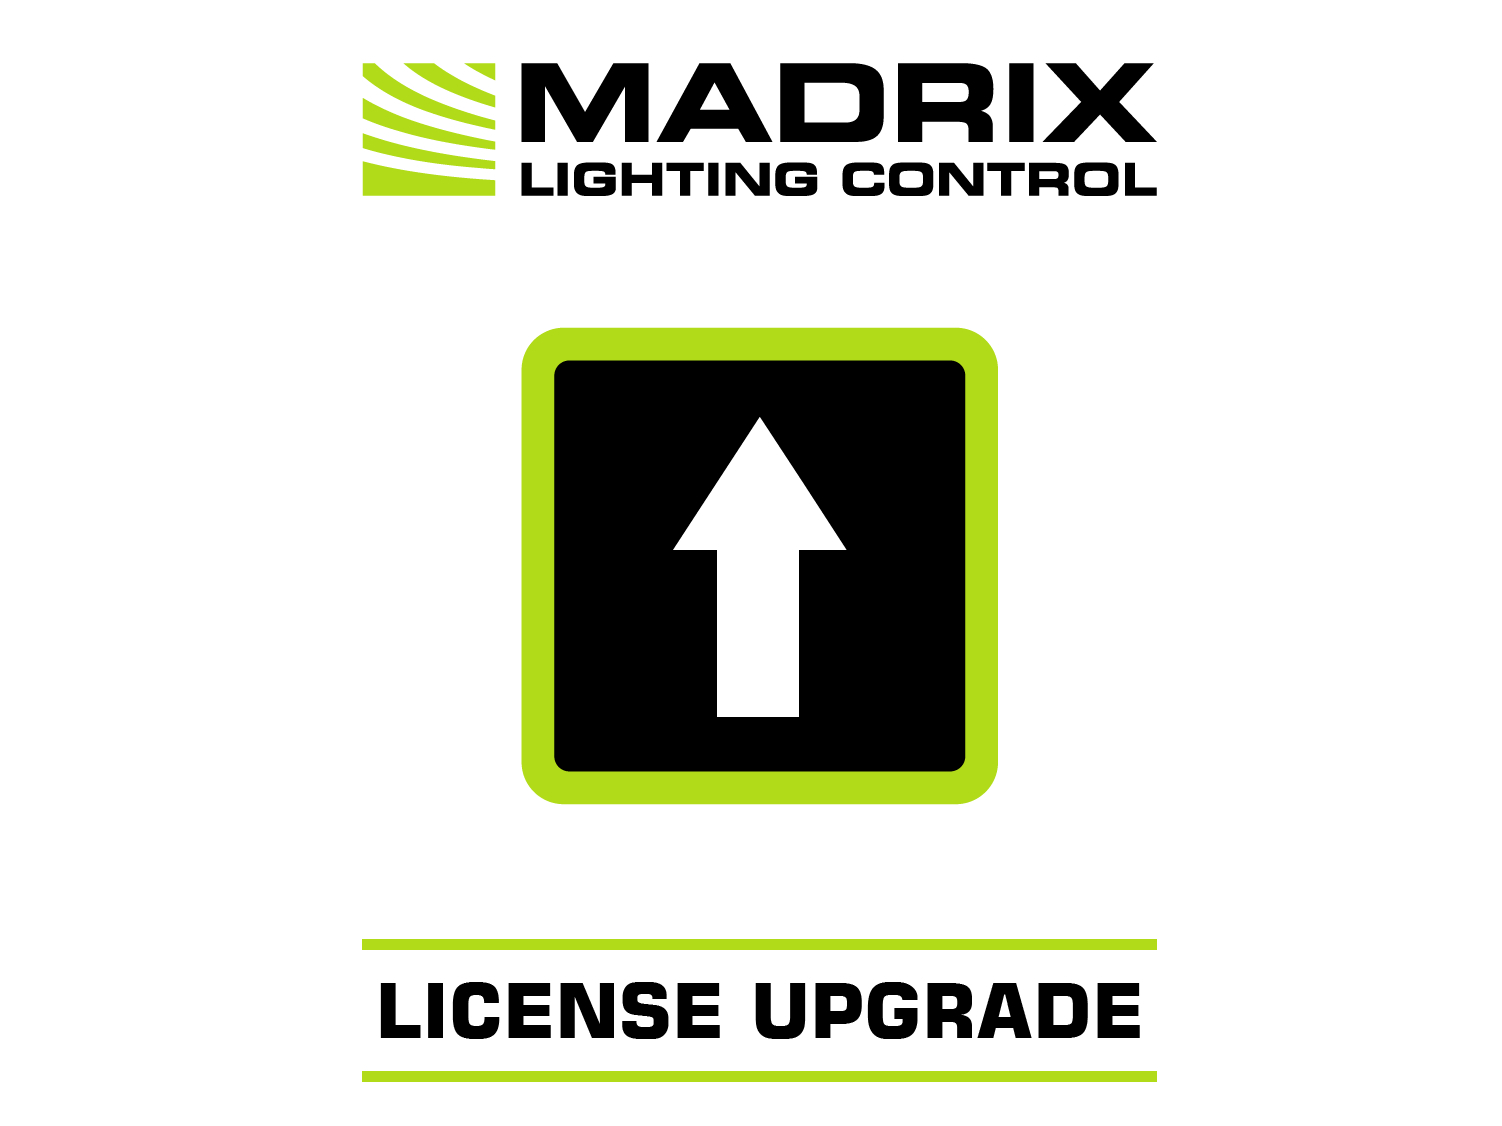 MADRIX UPGRADE basic -> maximum